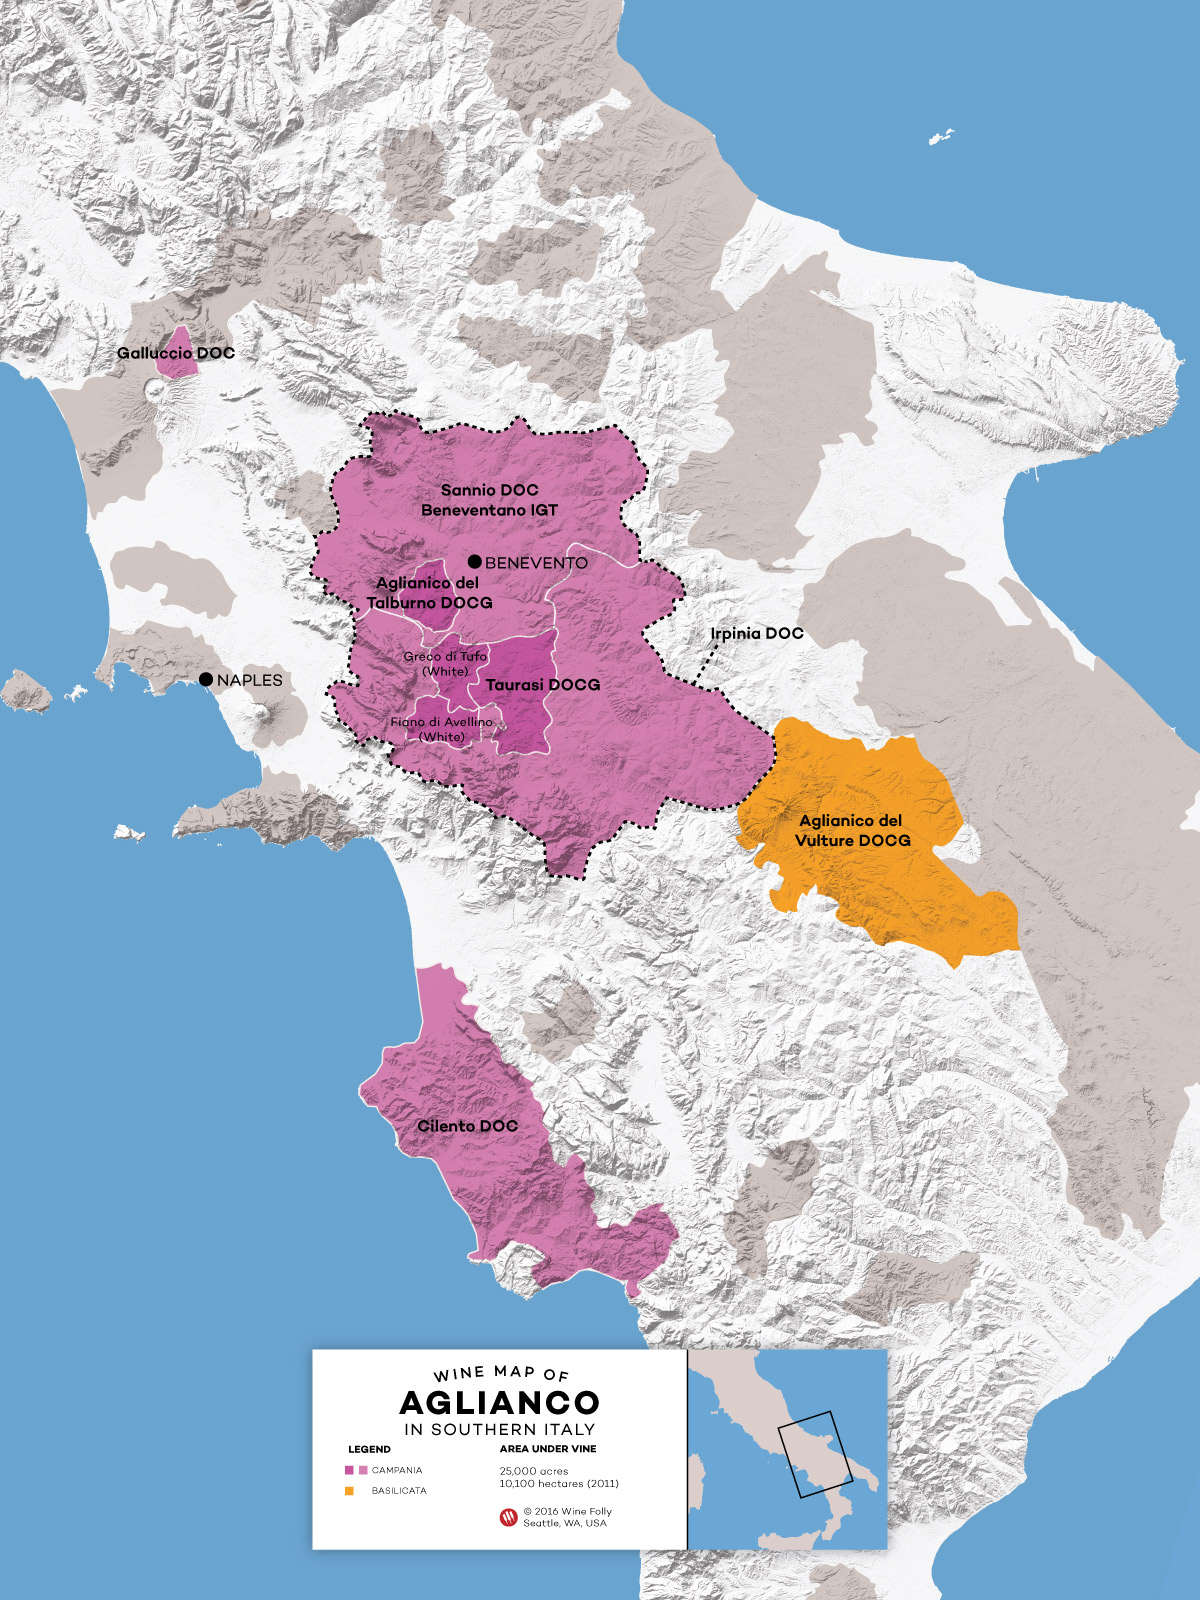 Southern Italy Aglianico regions within Basilicata and Campania by Wine Folly